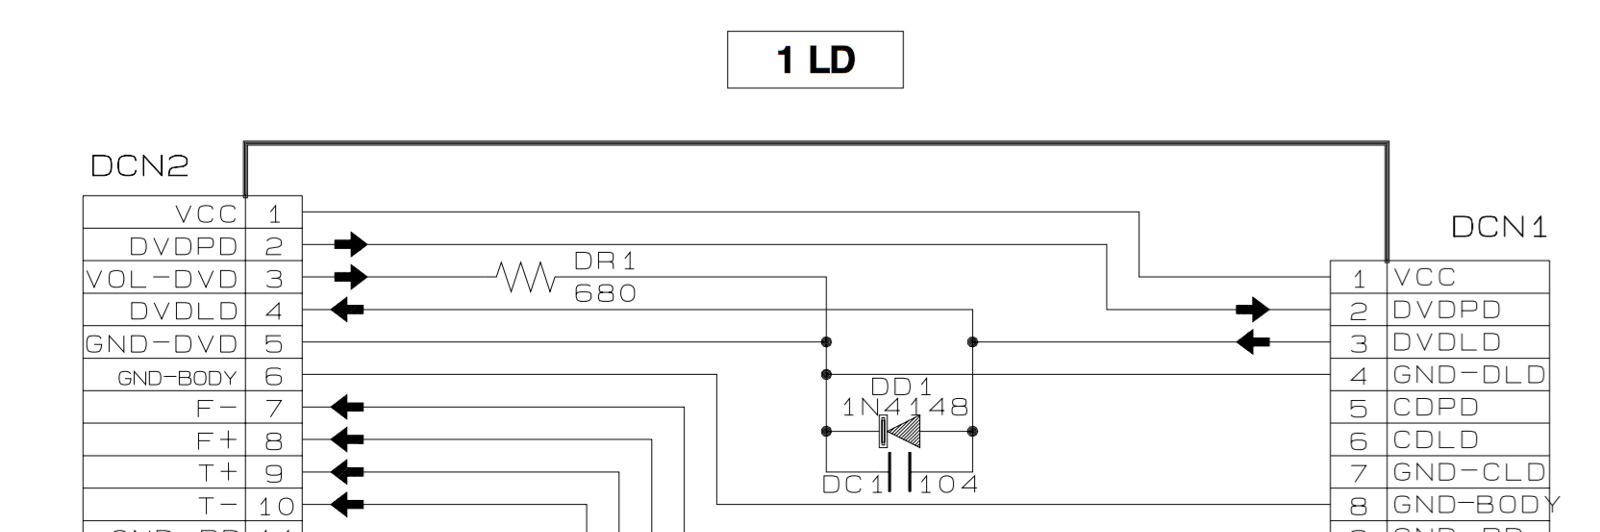 Salvaging A Samsung Dvd M101 Player R X Seger Medium Circuit Diagram For Servo Control Applications Certainly Not An Indicator Light Leds Or Vfds Coming Up Are More Appropriate That Purpose Observing The Monitor Diode Could Be